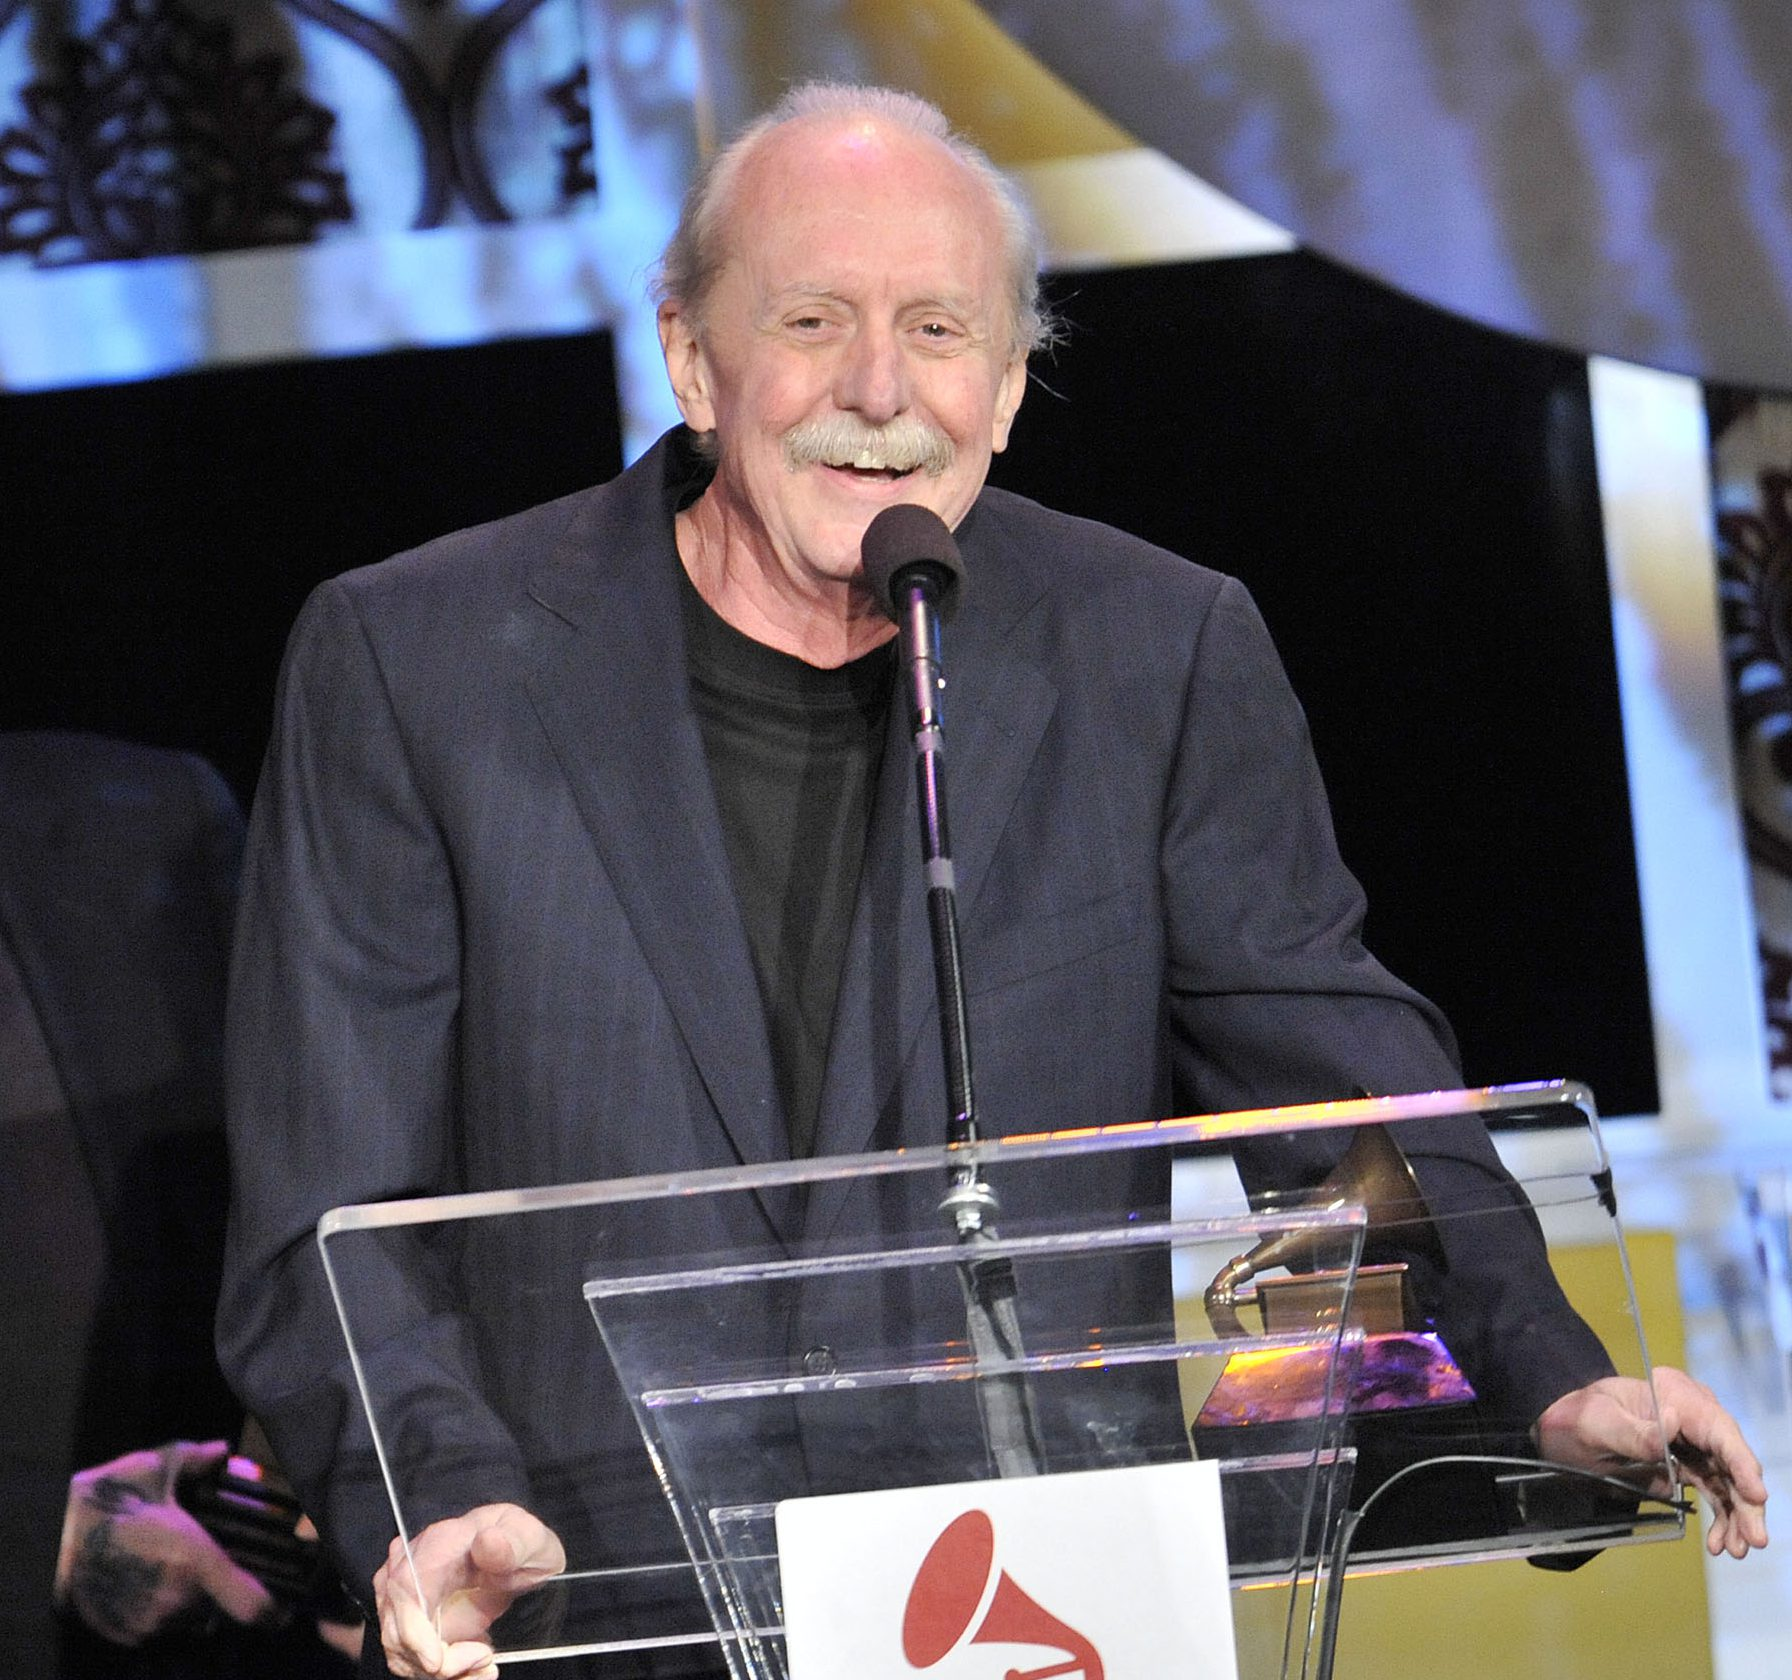 Butch Trucks in 2012 while accepting an award at the Grammys. (Getty)